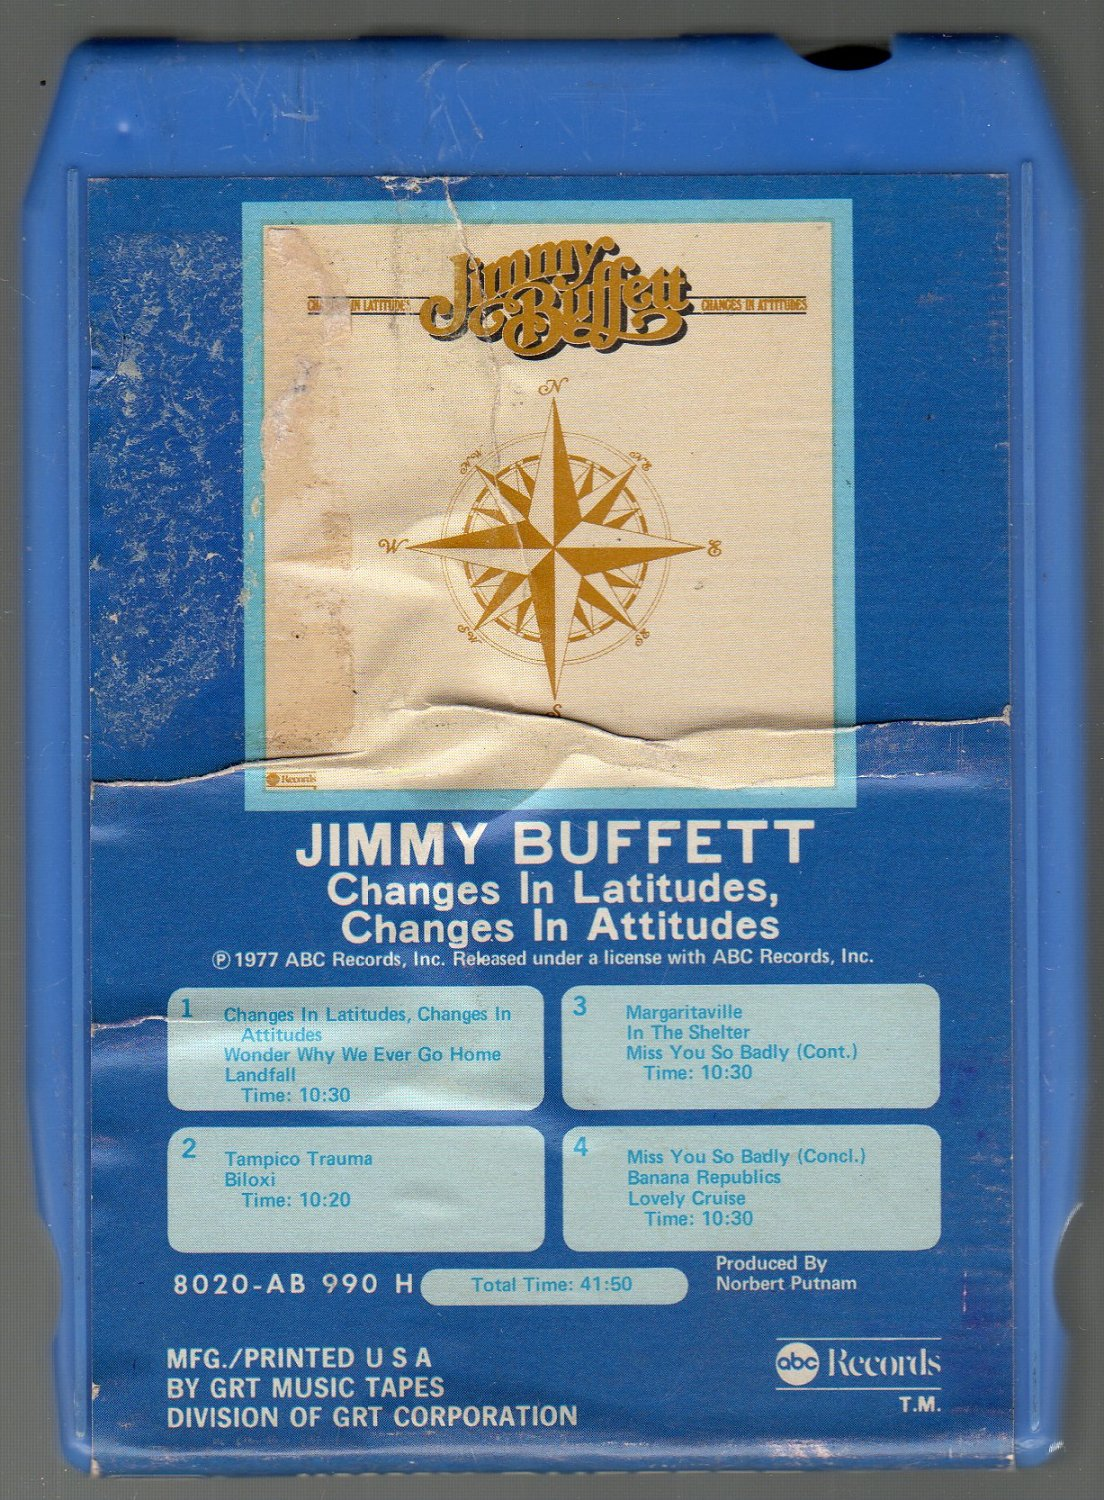 Jimmy Buffett - Changes In Latitudes, Changes In Attitudes SOLD 8-track tape